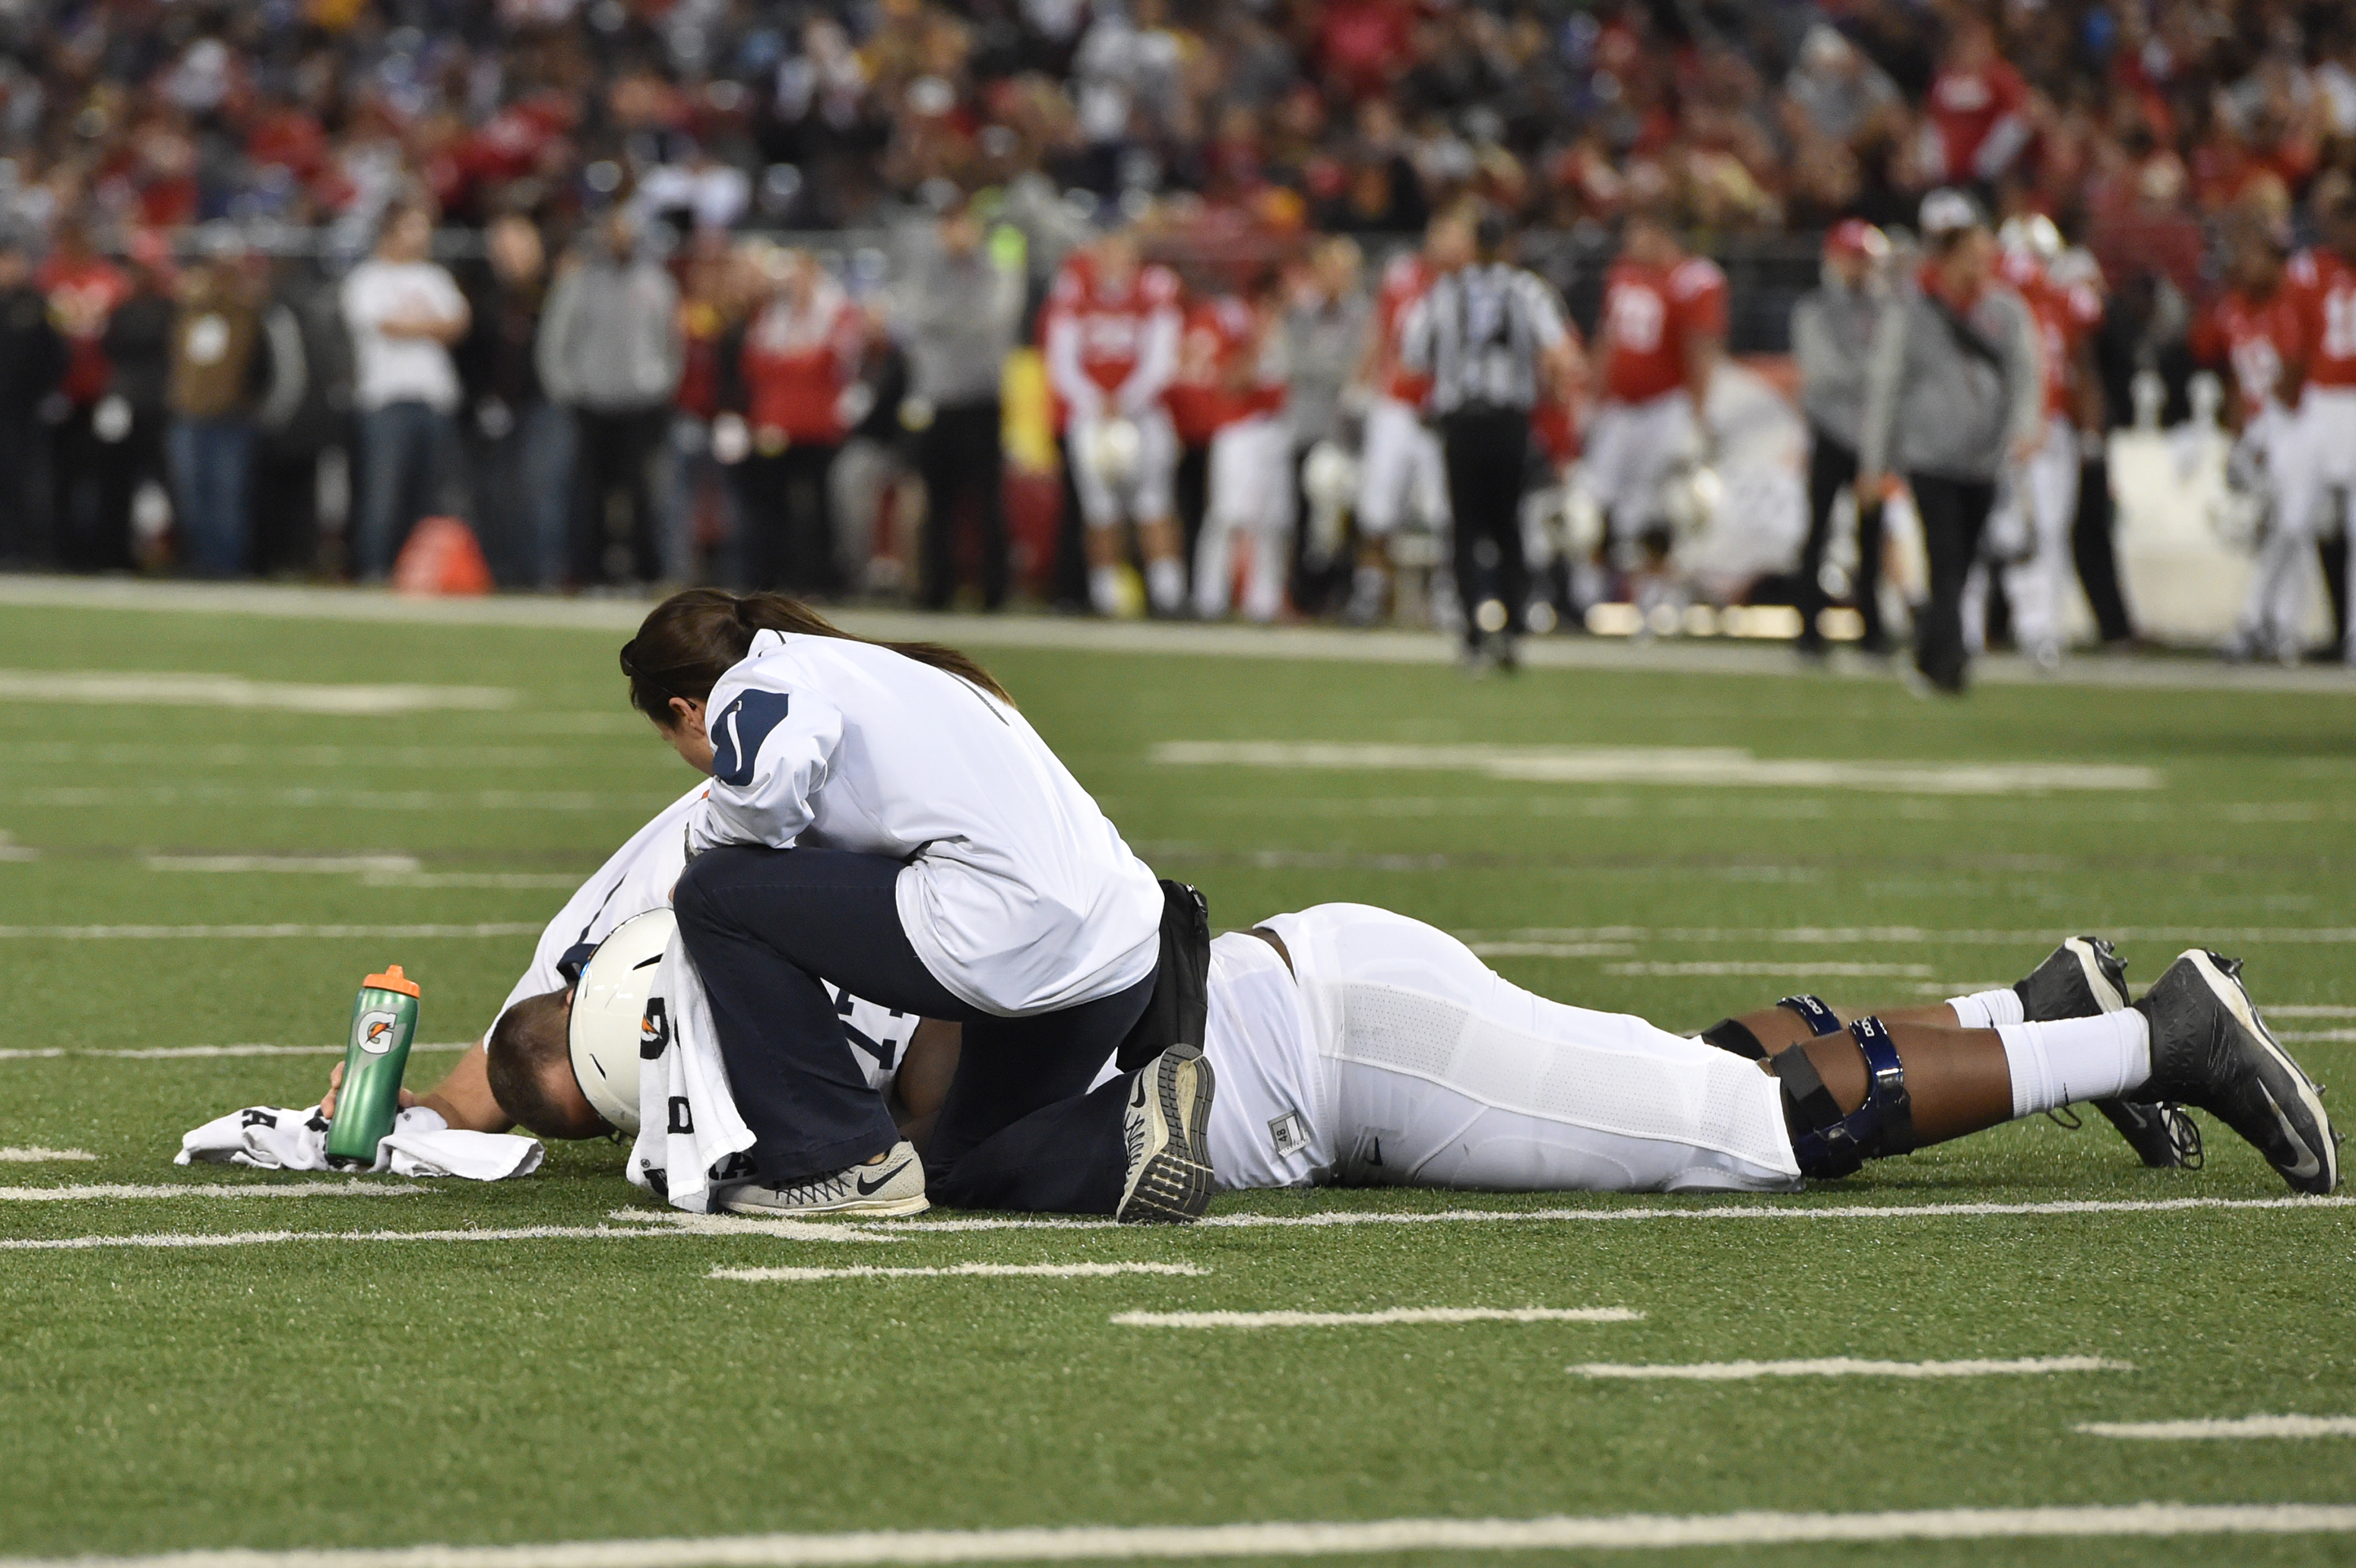 concussions in athletic training Concussion the cdc estimates 16-38 million concussions occur in sports and recreational activities annually however, these figures vastly underestimate the total, as many individuals do not seek medical advice.